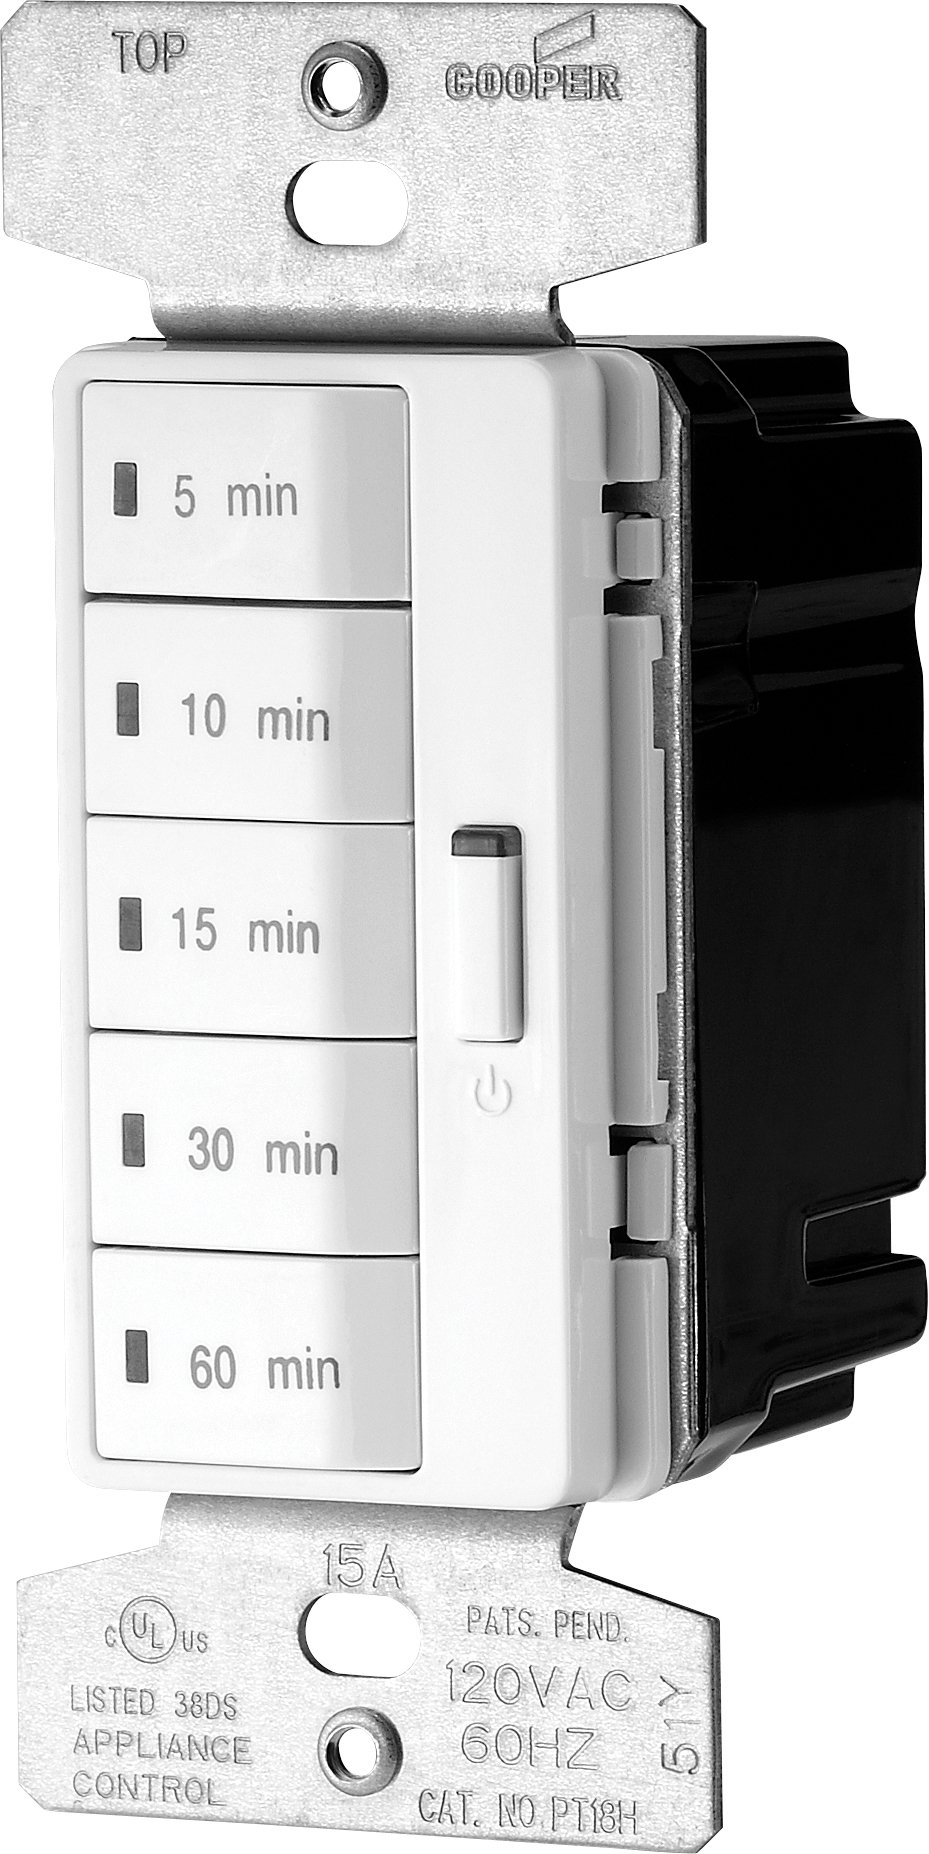 Eaton PT18M-W-K 1800-Watt 15-Amp 125-Volt 5-Button Minute Timer with Auto- Off, White